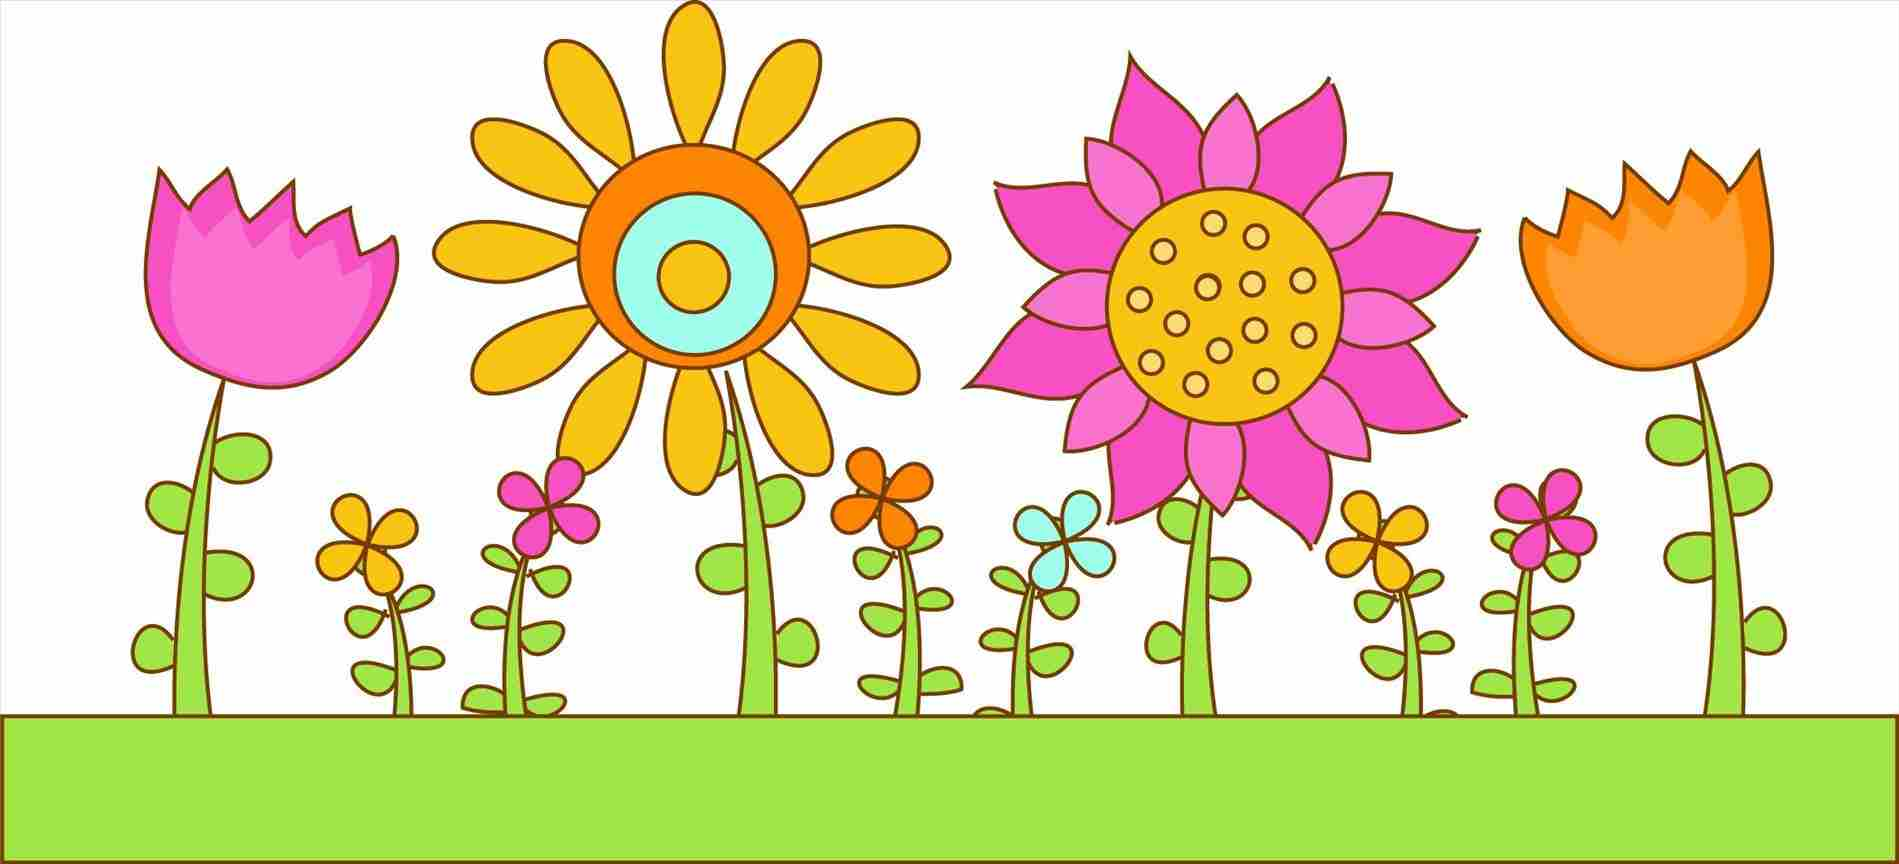 Free download clip art. Flower in the garden clipart